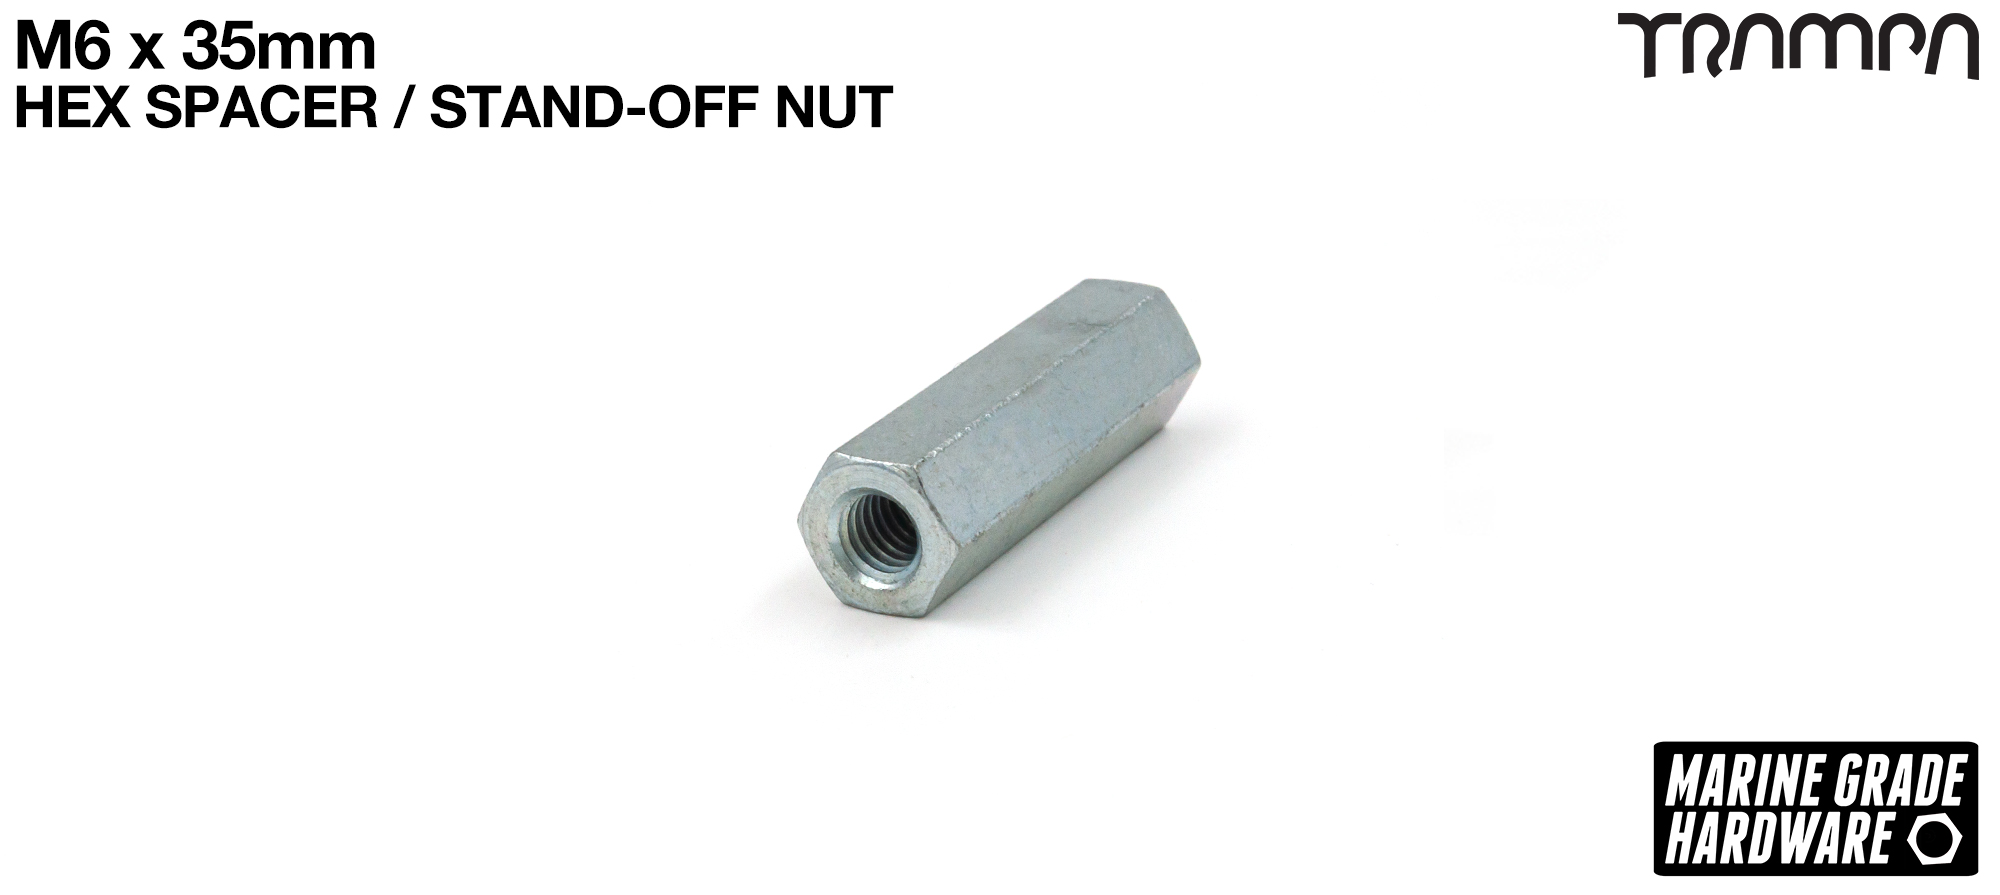 M6 x 35mm Zinc Plated Threaded Hex Spacer - Connects the Primo 3 Spoke 9 Inch Wheel to the 66tooth Slave Wheel